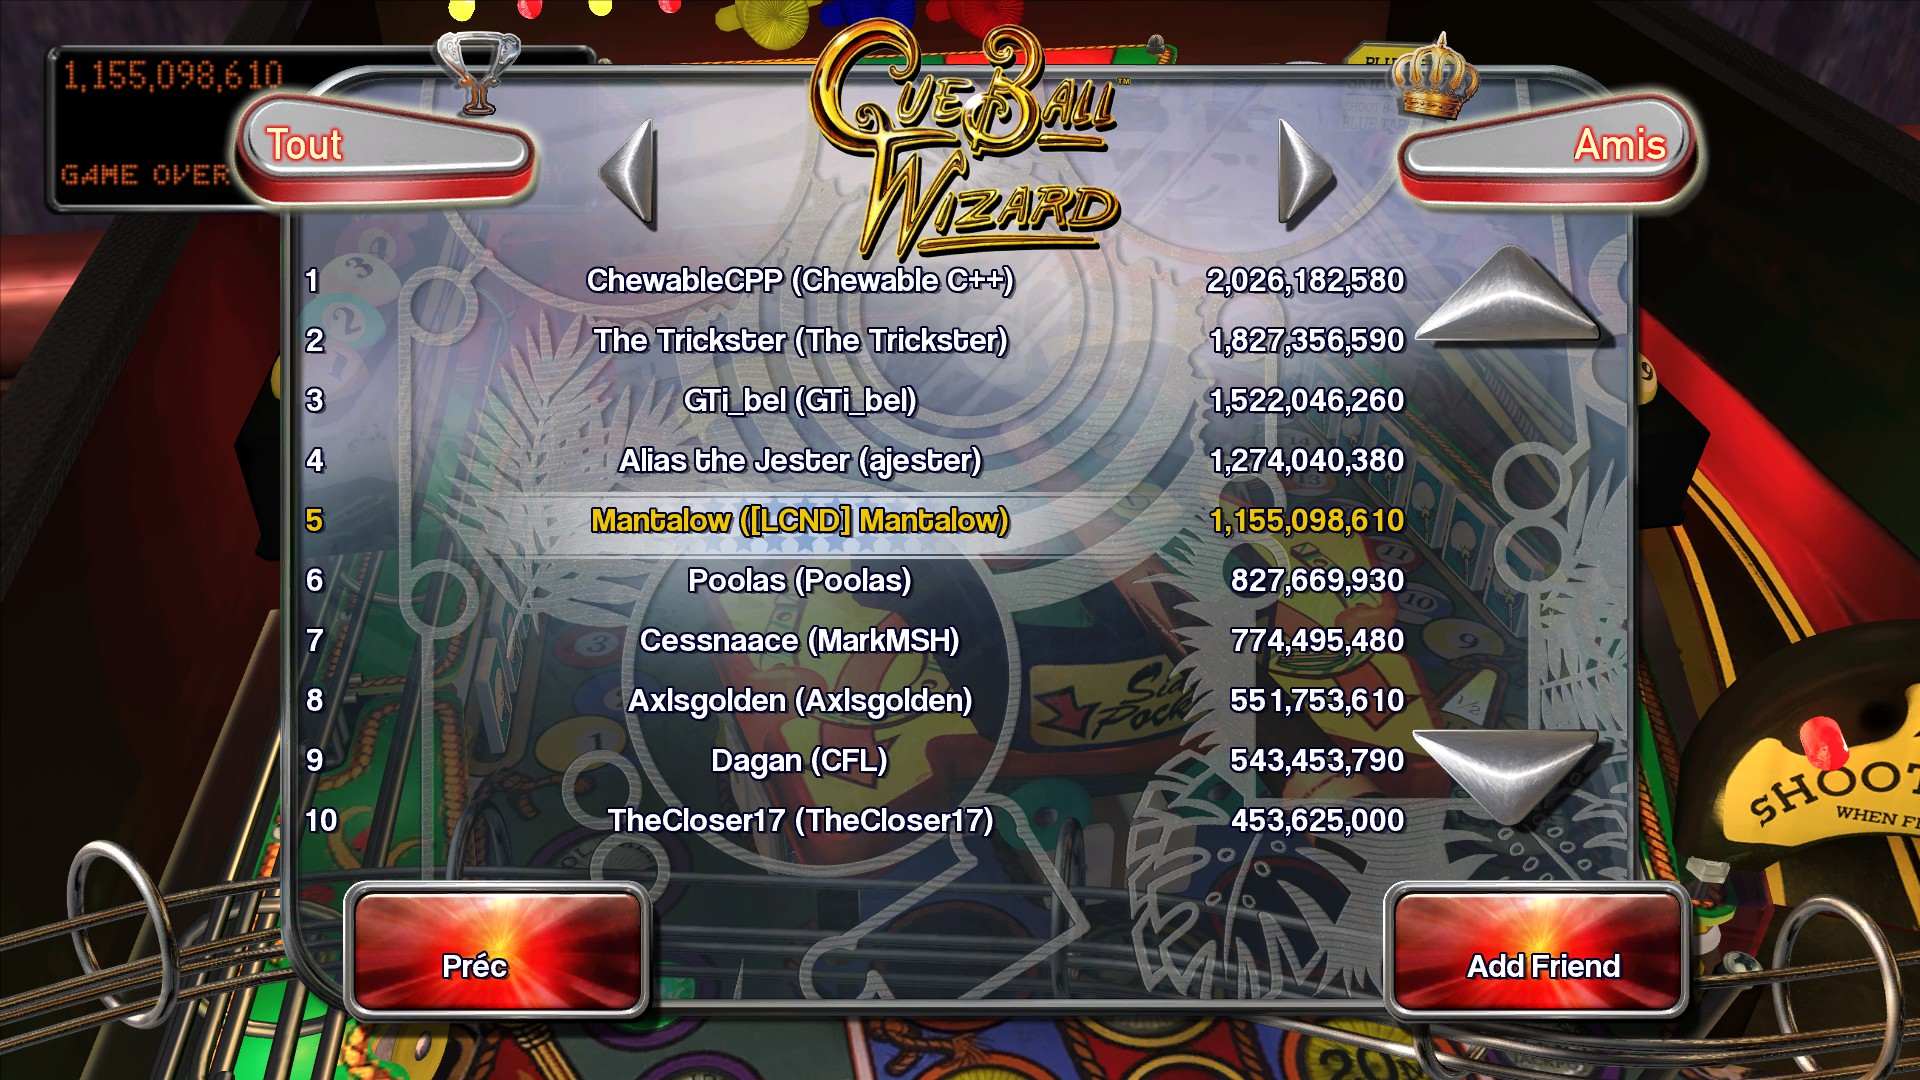 Mantalow: Pinball Arcade: Cue Ball Wizard (PC) 1,155,098,610 points on 2016-04-11 15:31:41